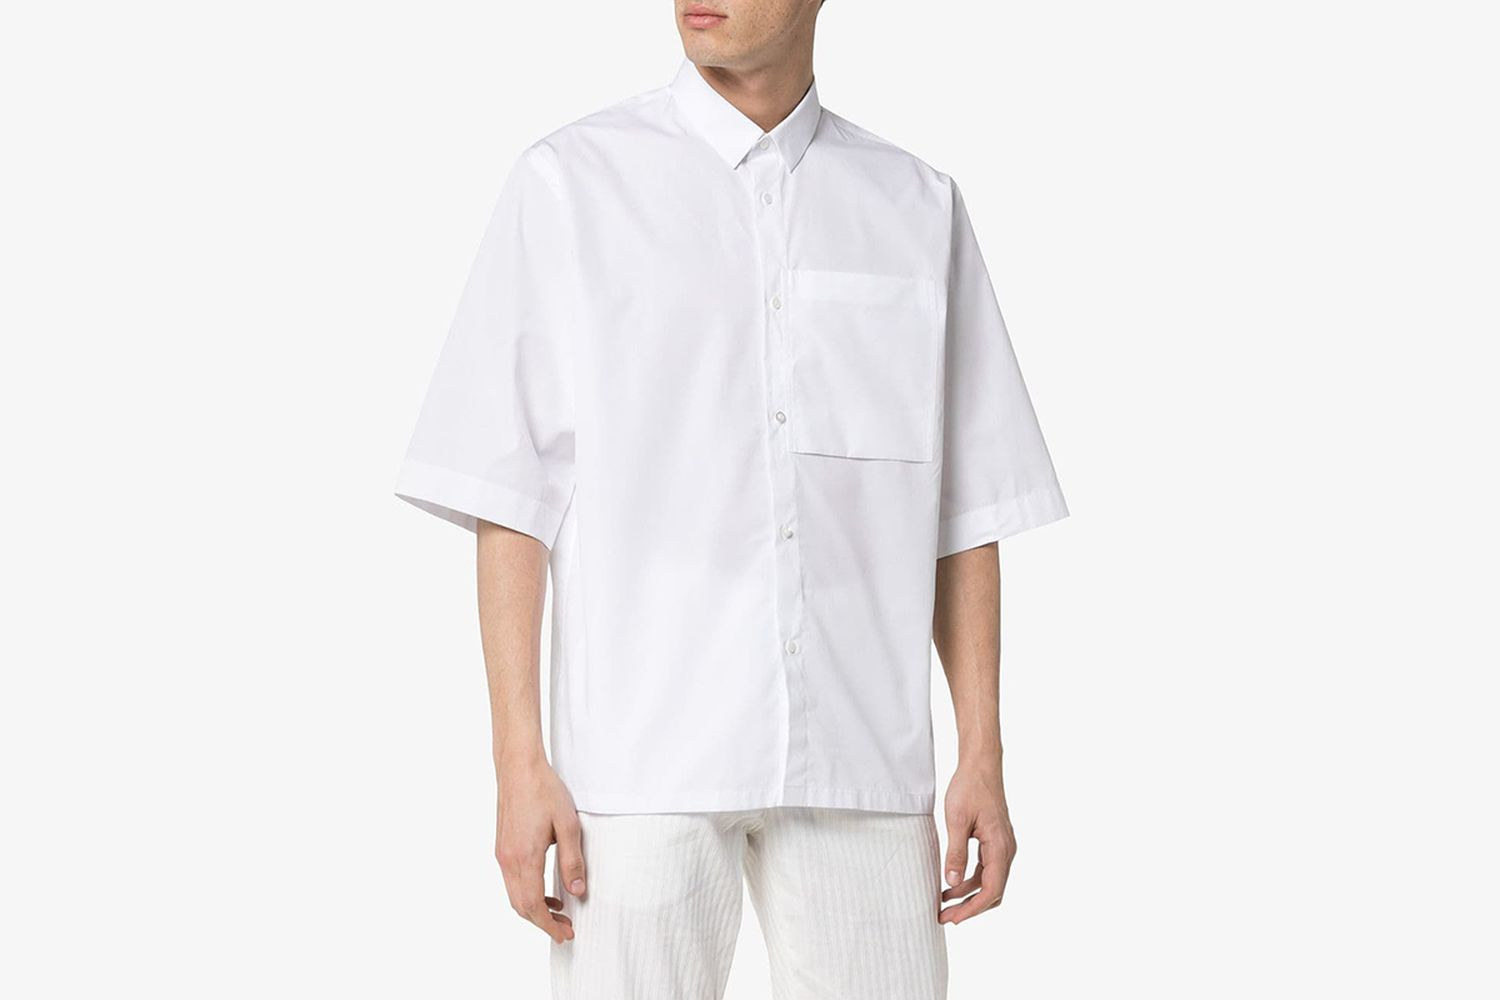 Silence Large Pocket Shirt